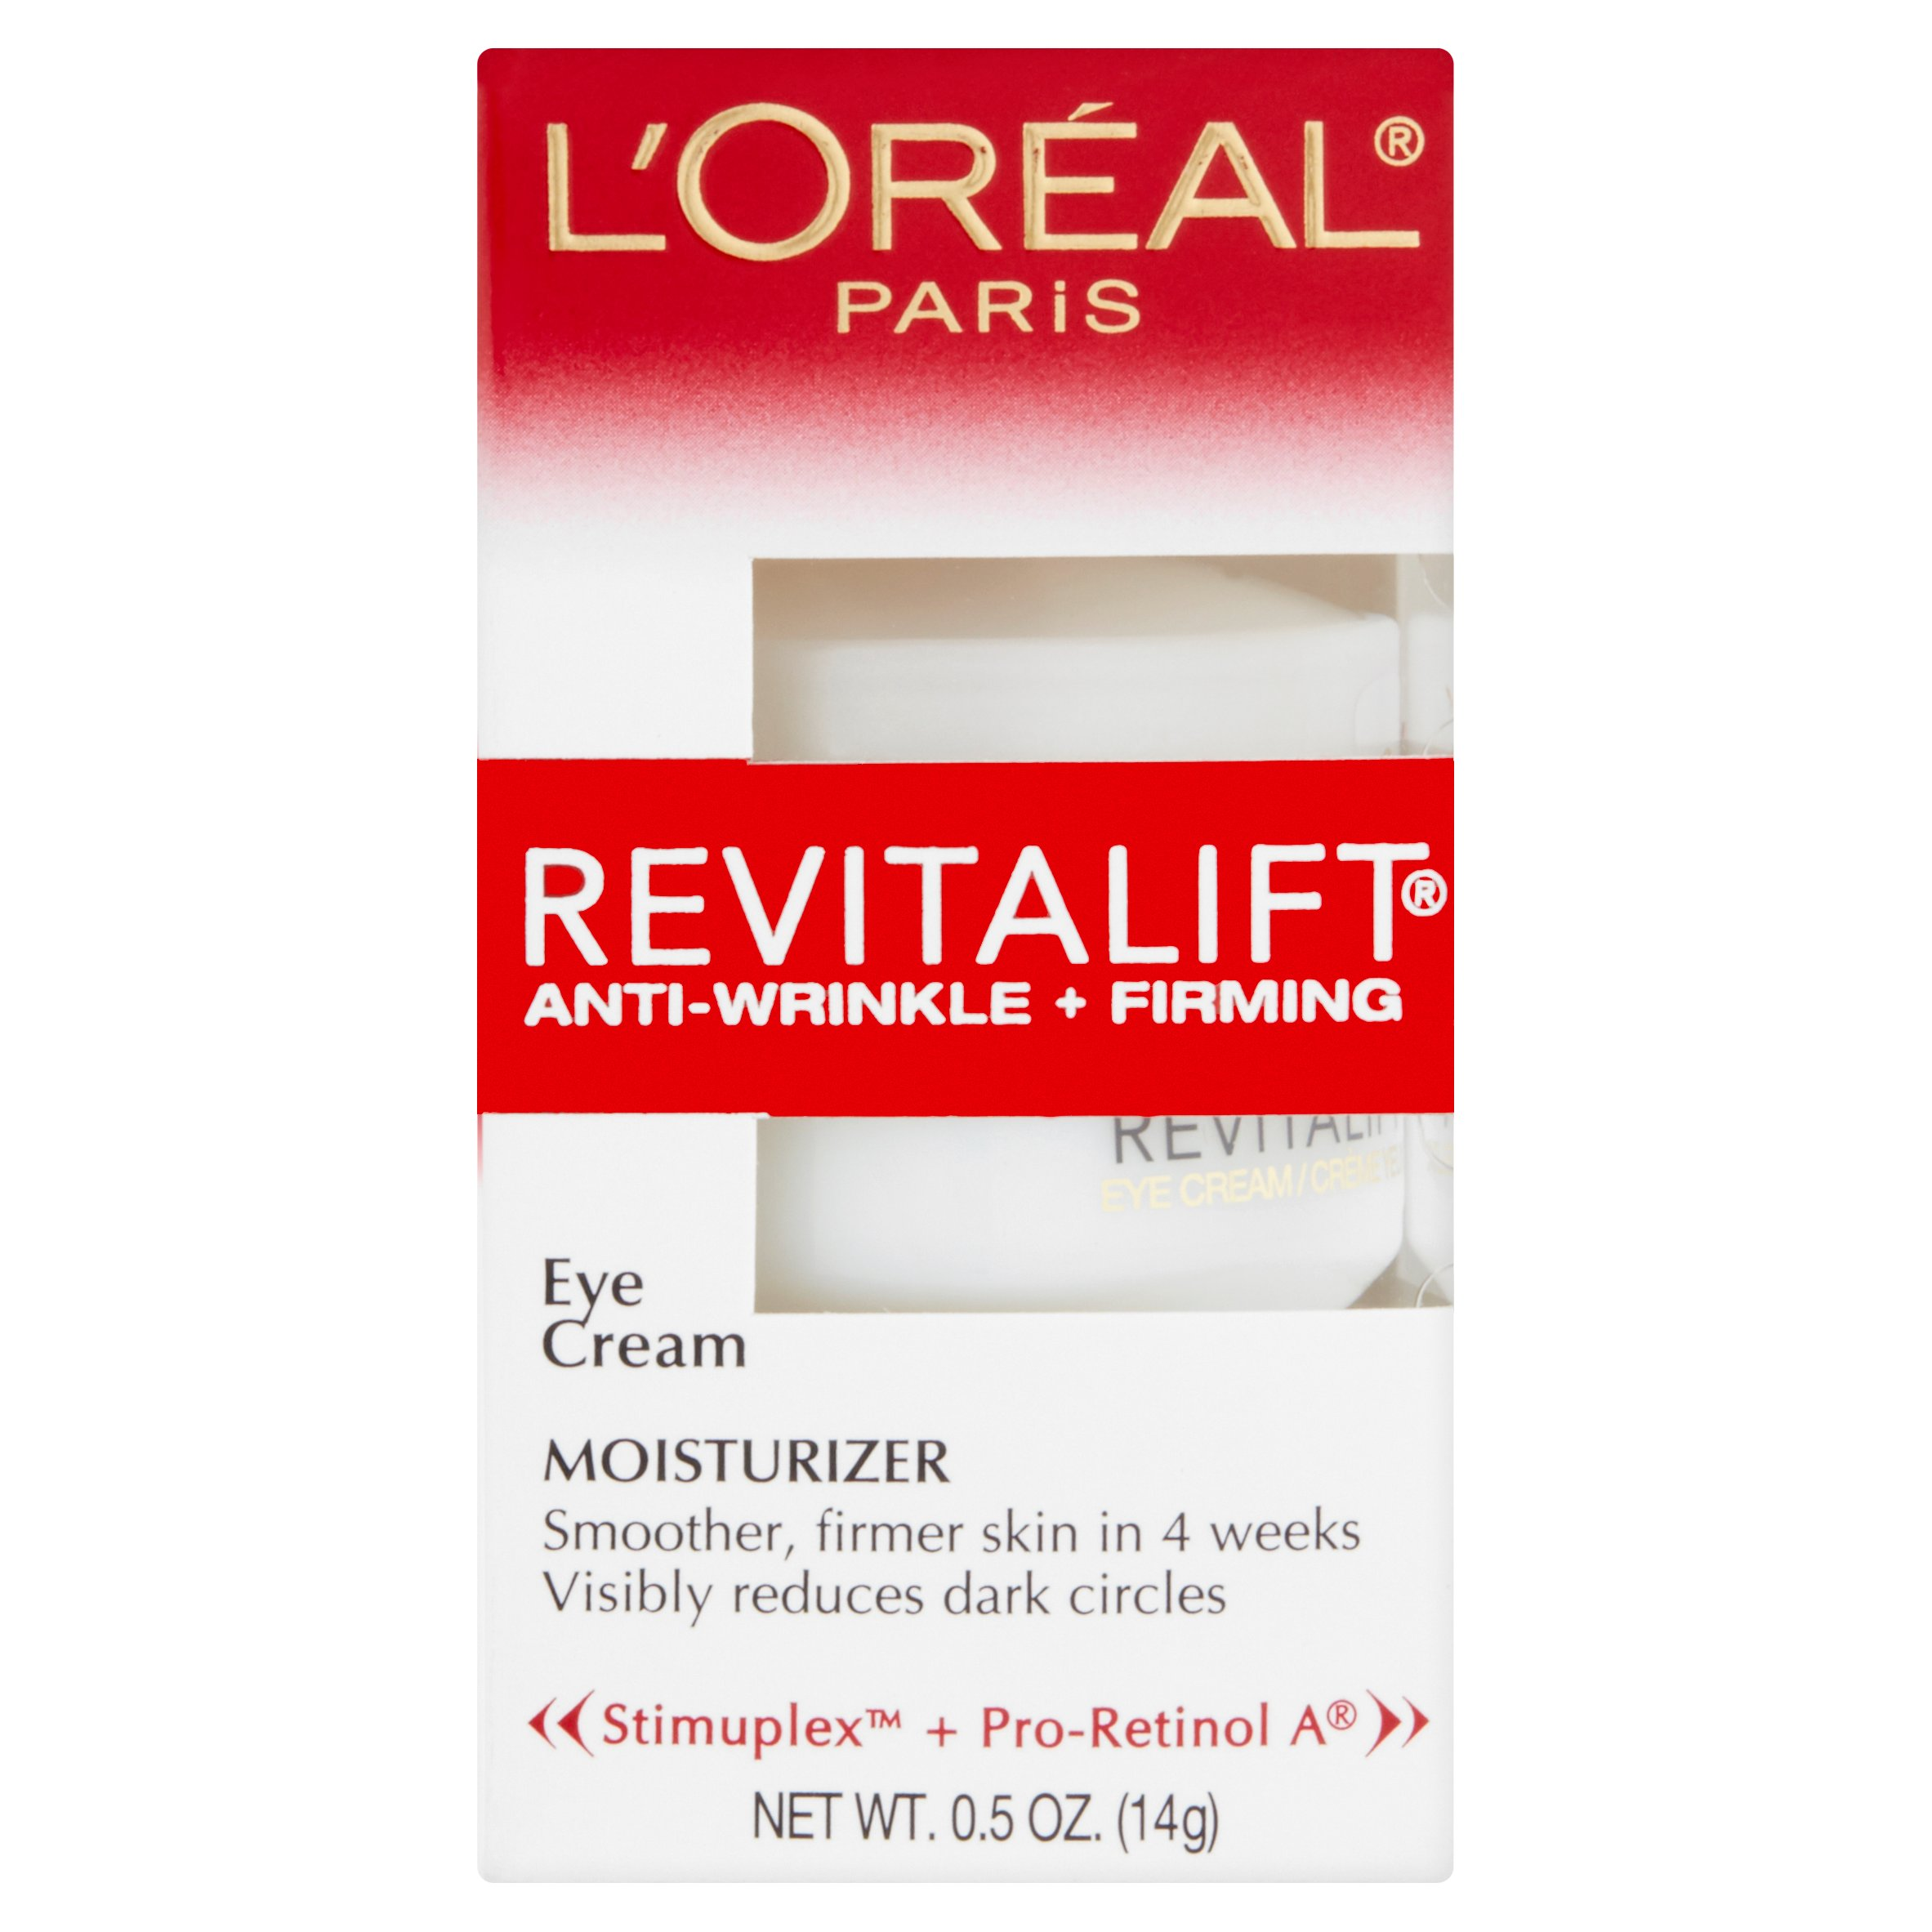 L'Oreal Paris Revitalift Anti-Wrinkle + Firming Eye Cream Moisturizer, 0.5 oz